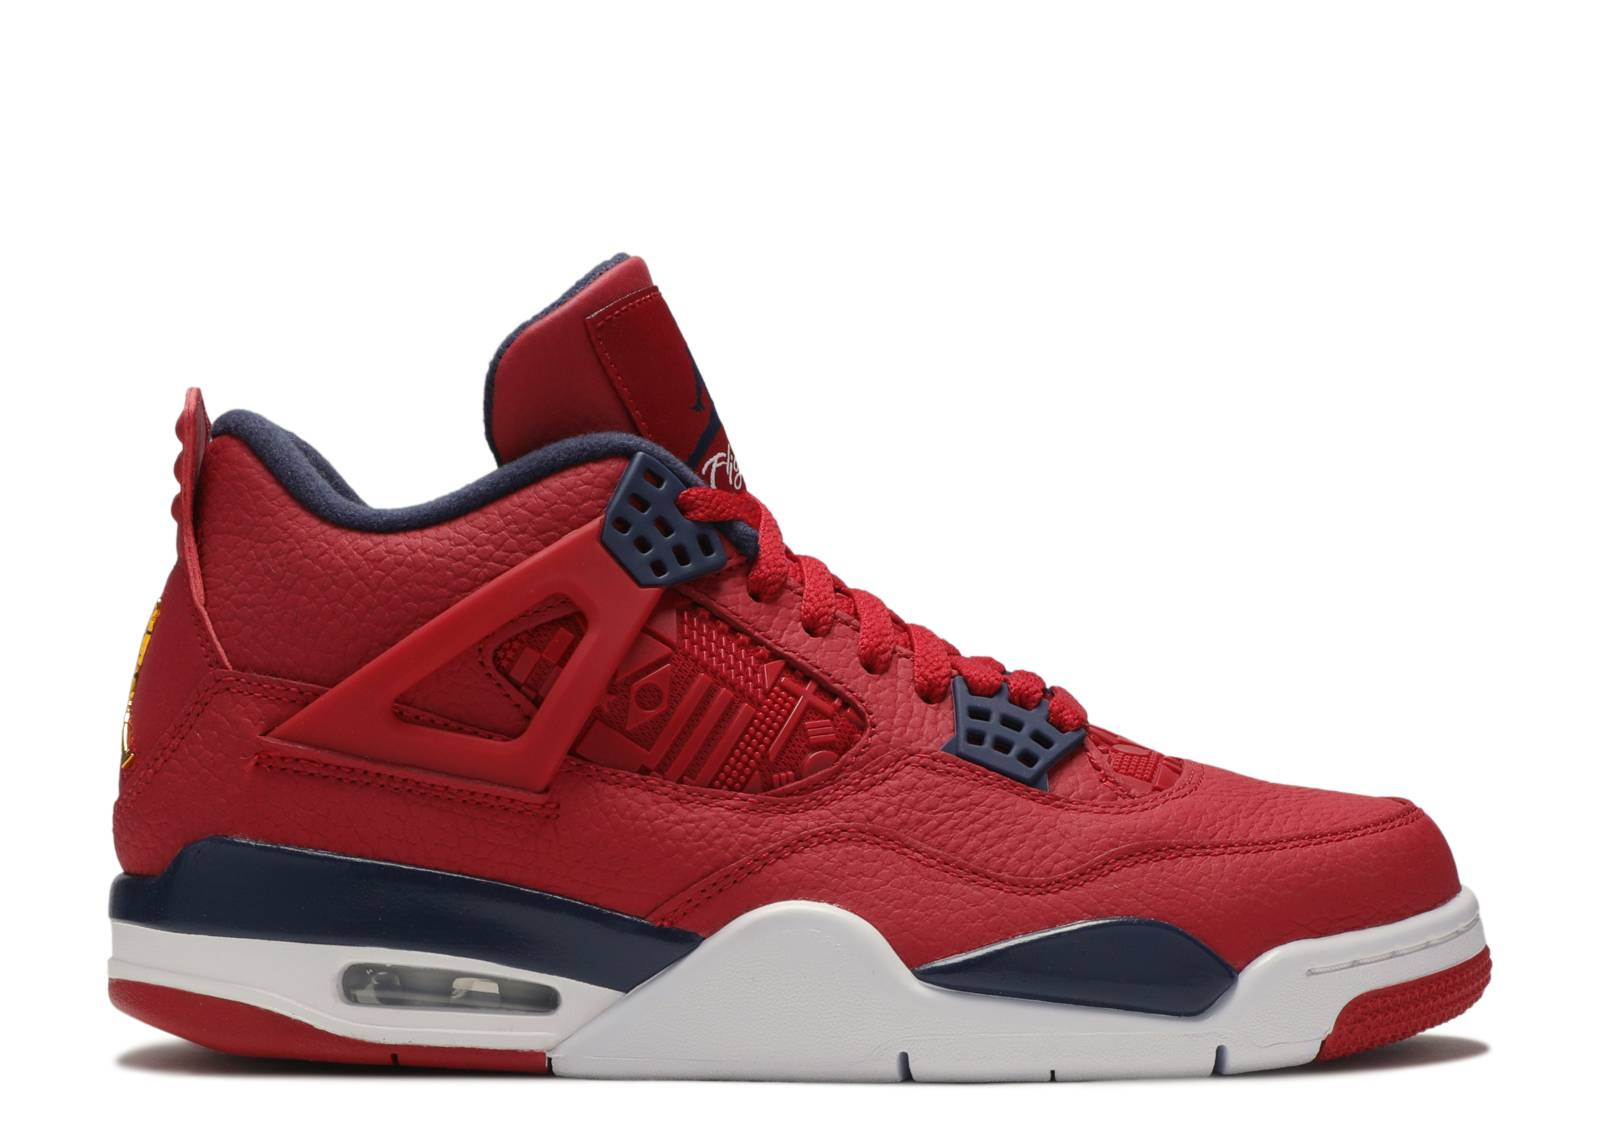 cheaper d0da2 be3ae Air Jordan 4 Retro SE